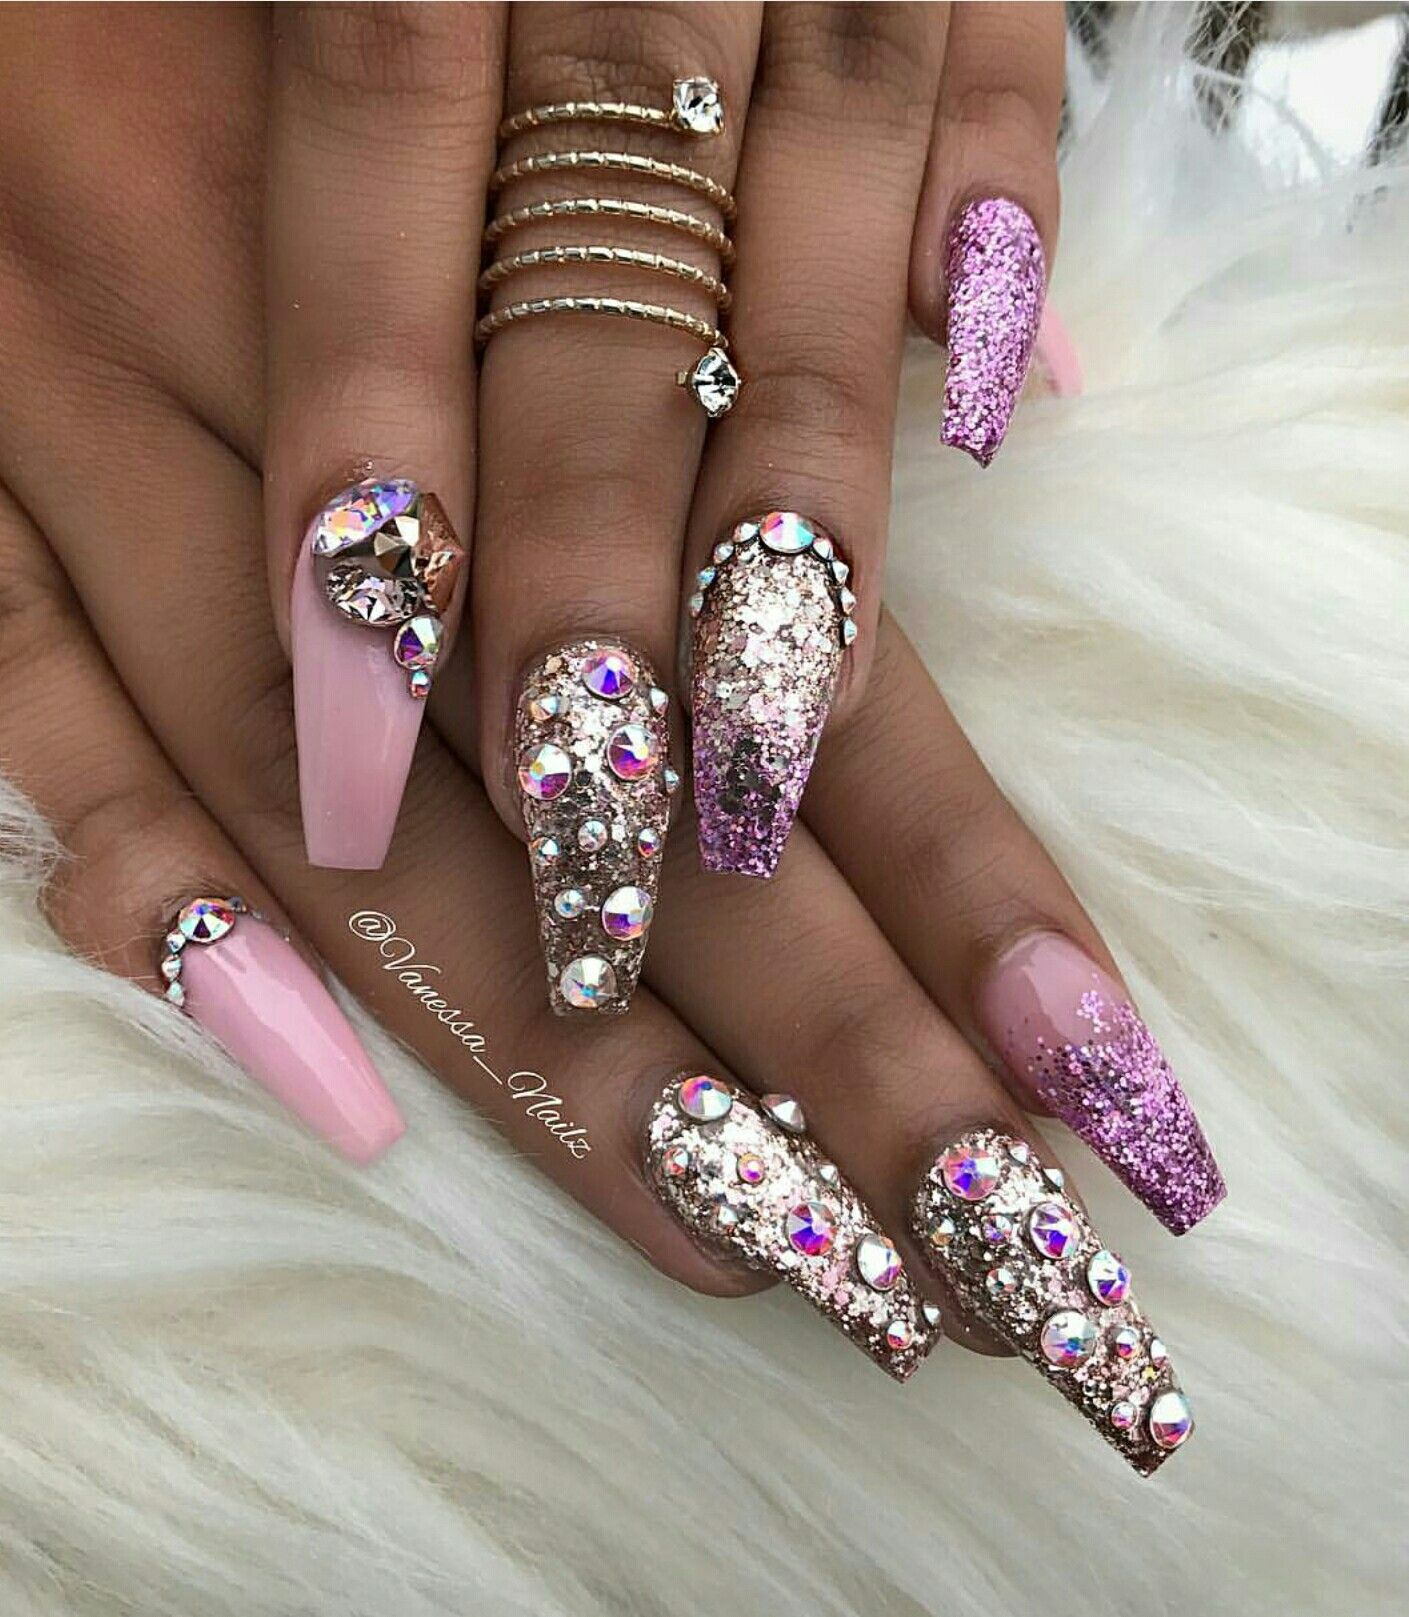 Pin by 💎KIANIA💎 on CLAW COUTURE | Pinterest | Bling nail art ...